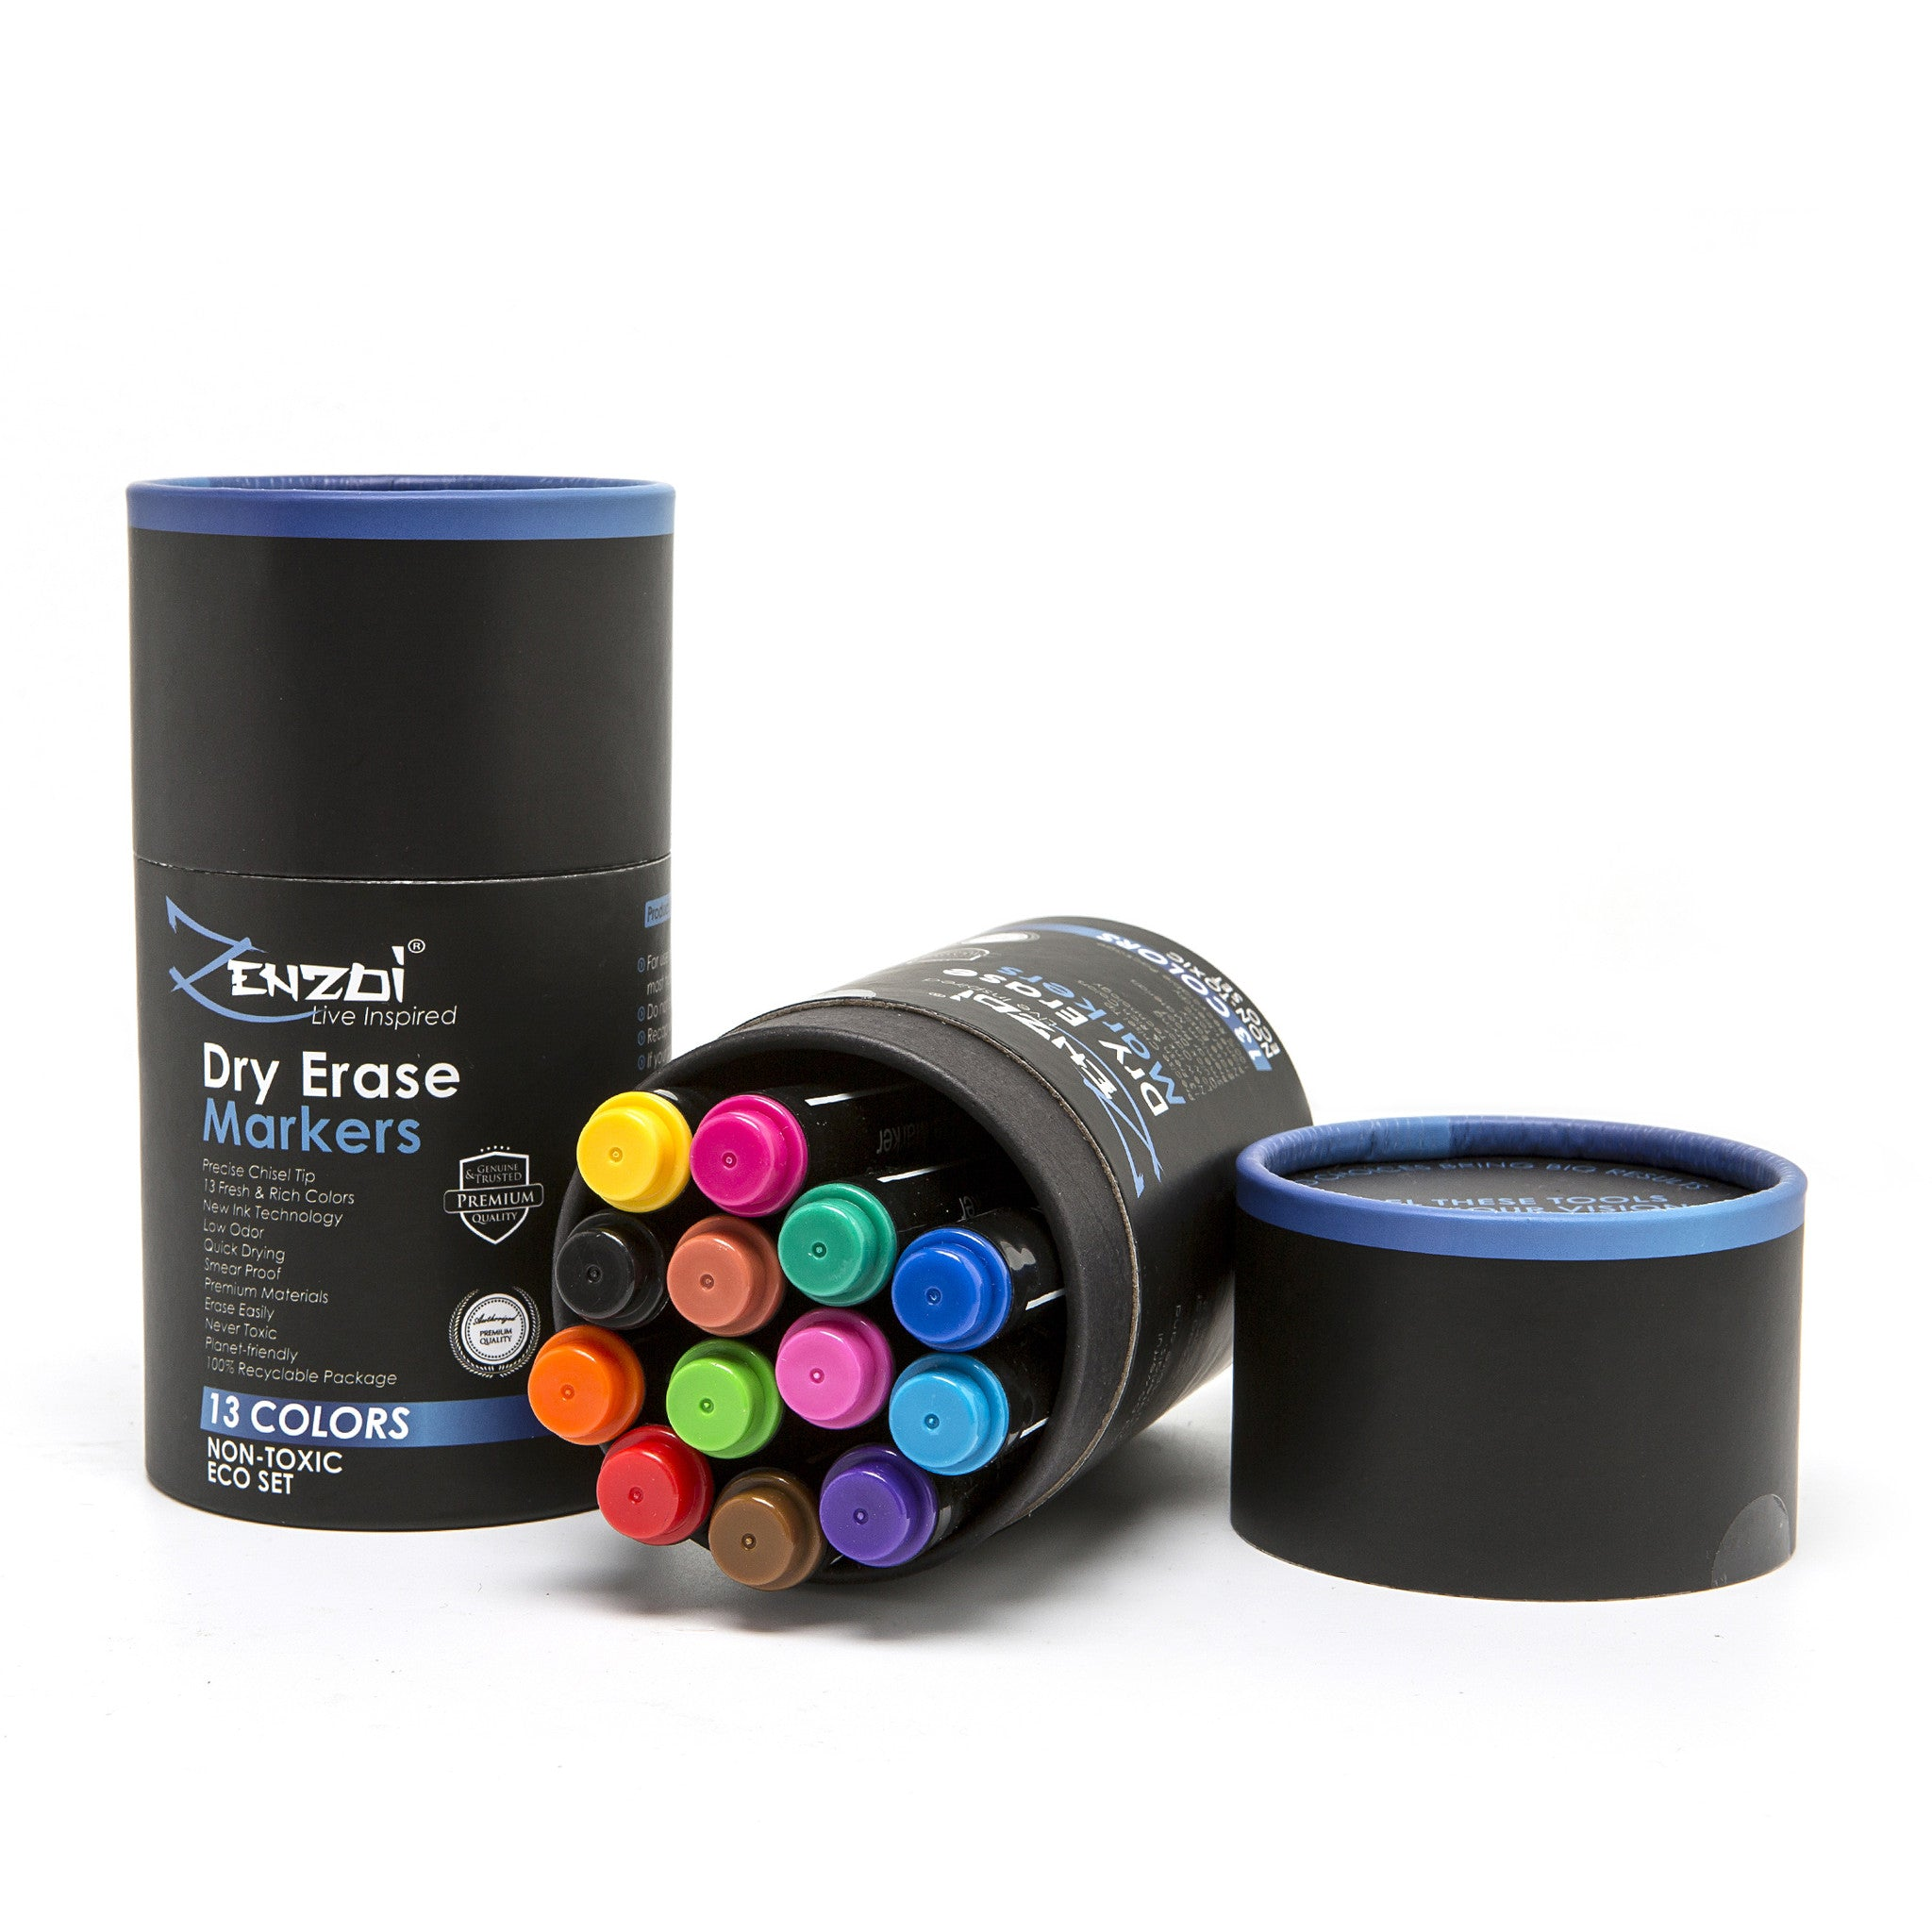 Dry erase markers on sale